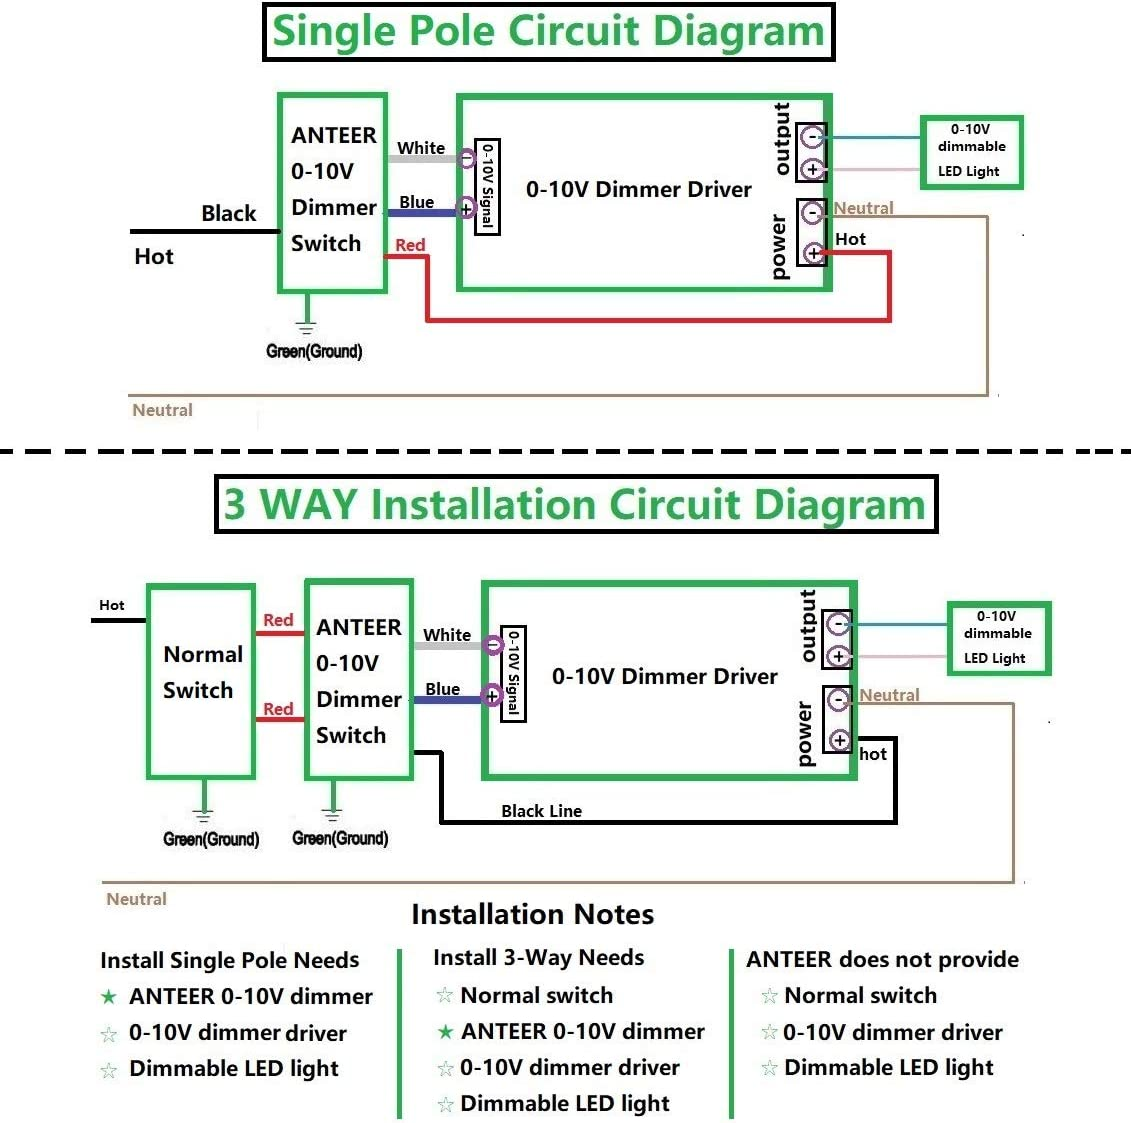 Led Wiring Diagram Dimmer Switch from images-na.ssl-images-amazon.com